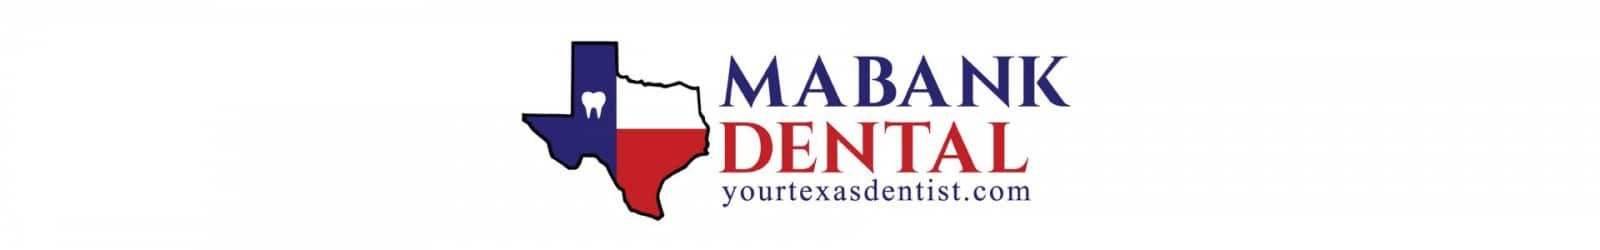 Mabank Dental logo example